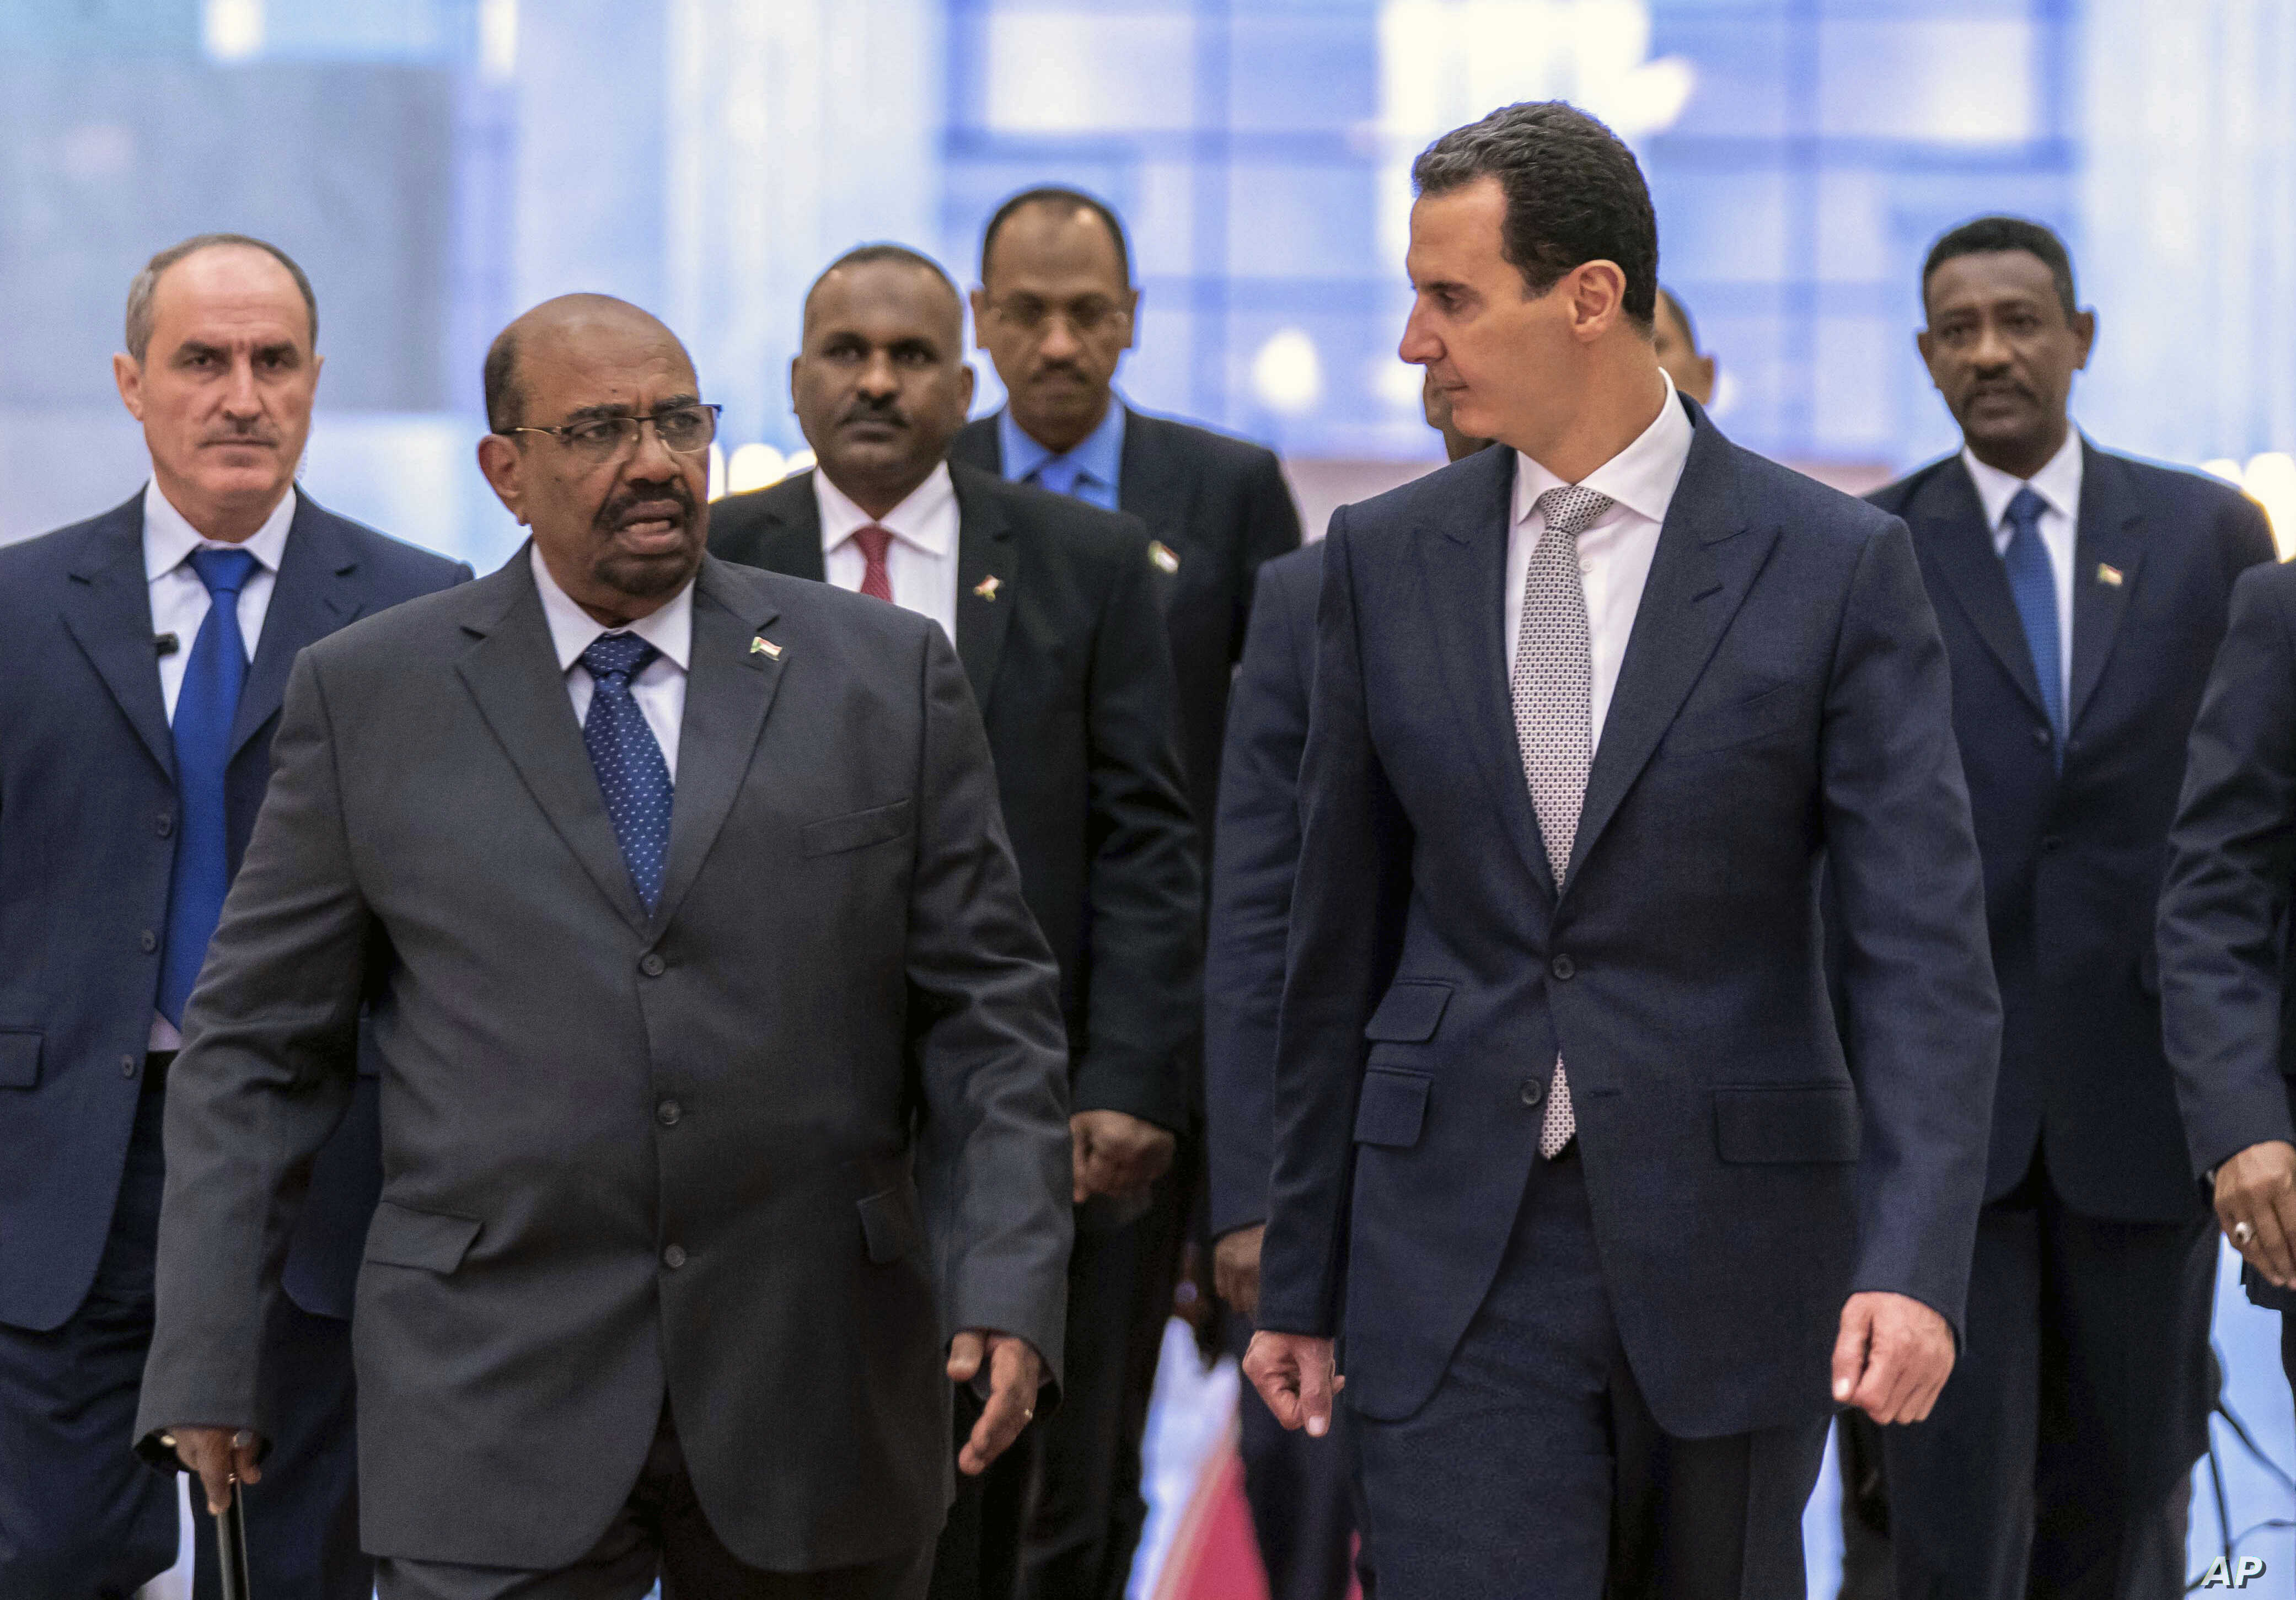 FILE - In this photo released by the Syrian official news agency SANA, Dec. 16, 2018, Syrian President Bashar Assad, right, meets with Sudan's President Omar Bashir in Damascus, Syria.